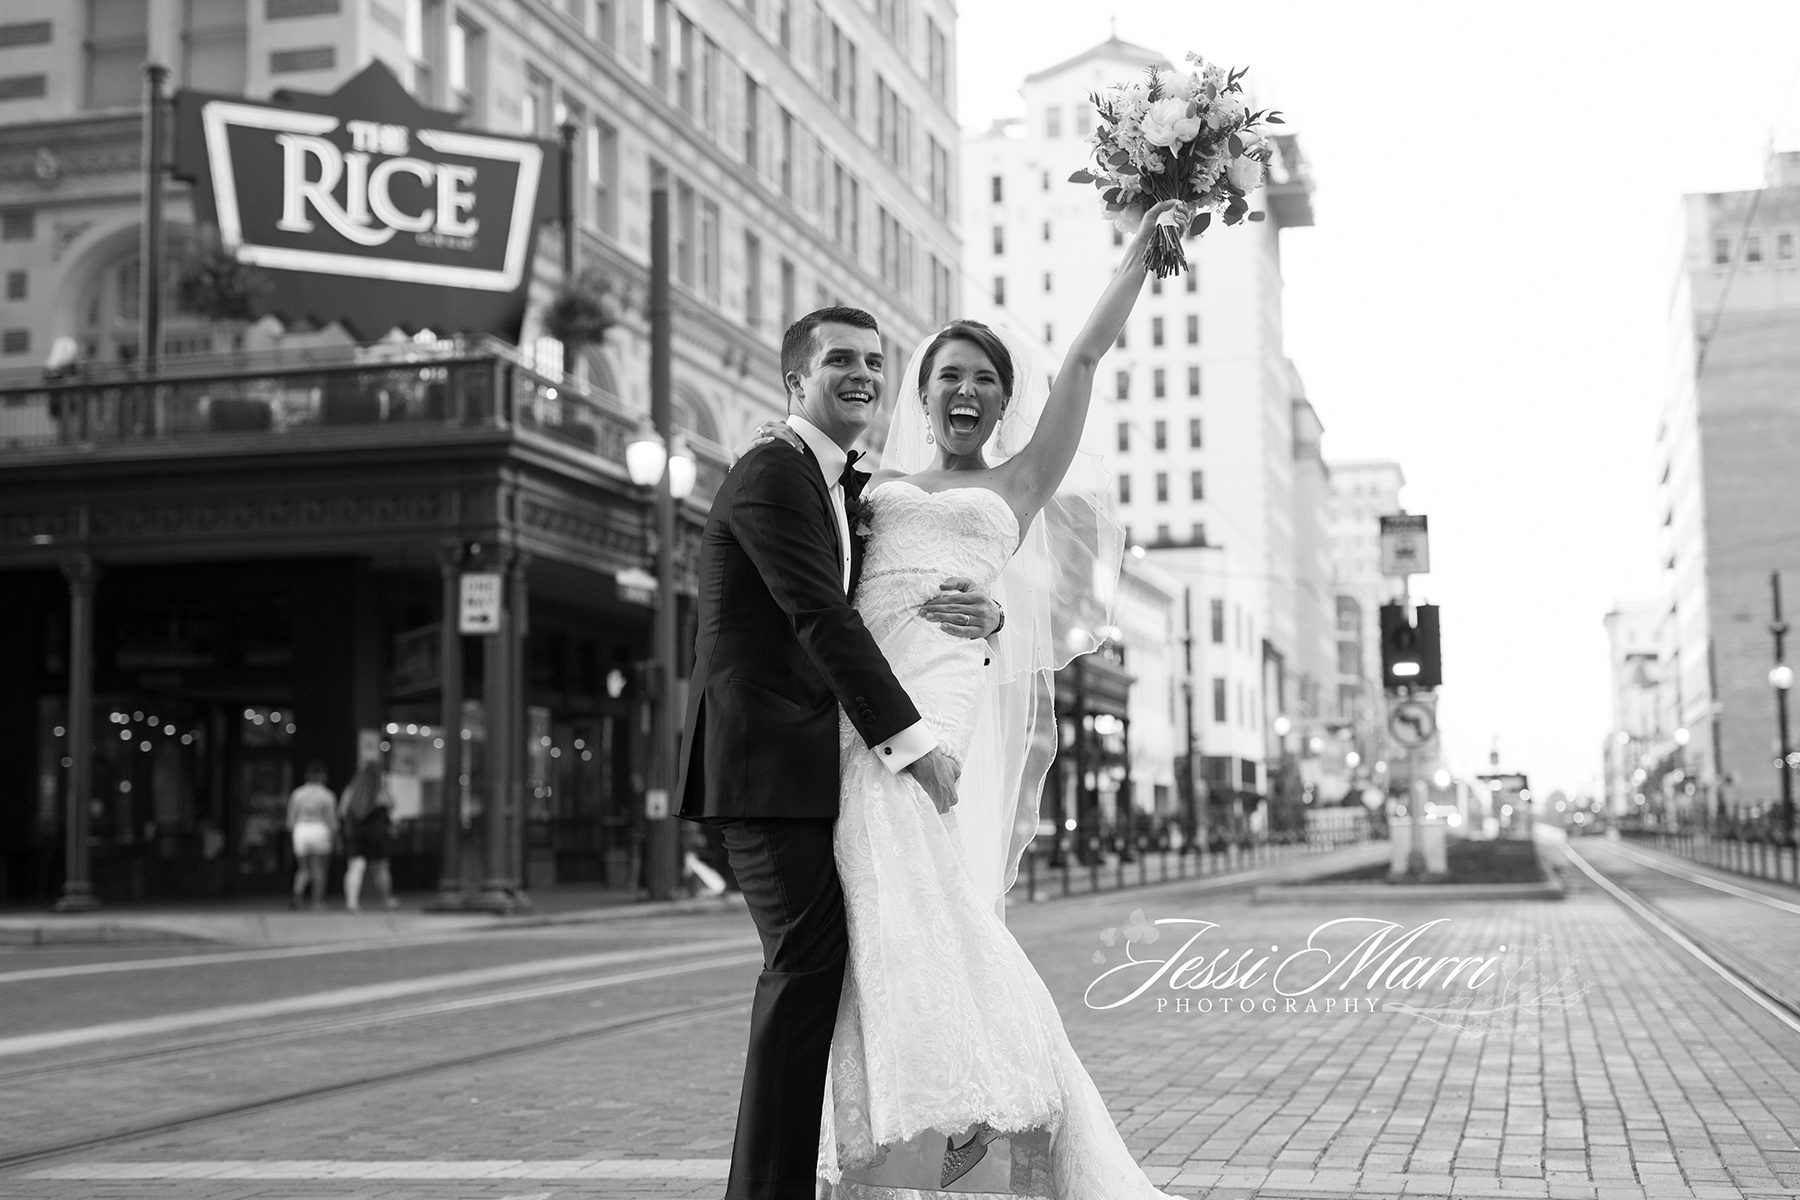 The Rice Hotel Houston | A Wedding Video